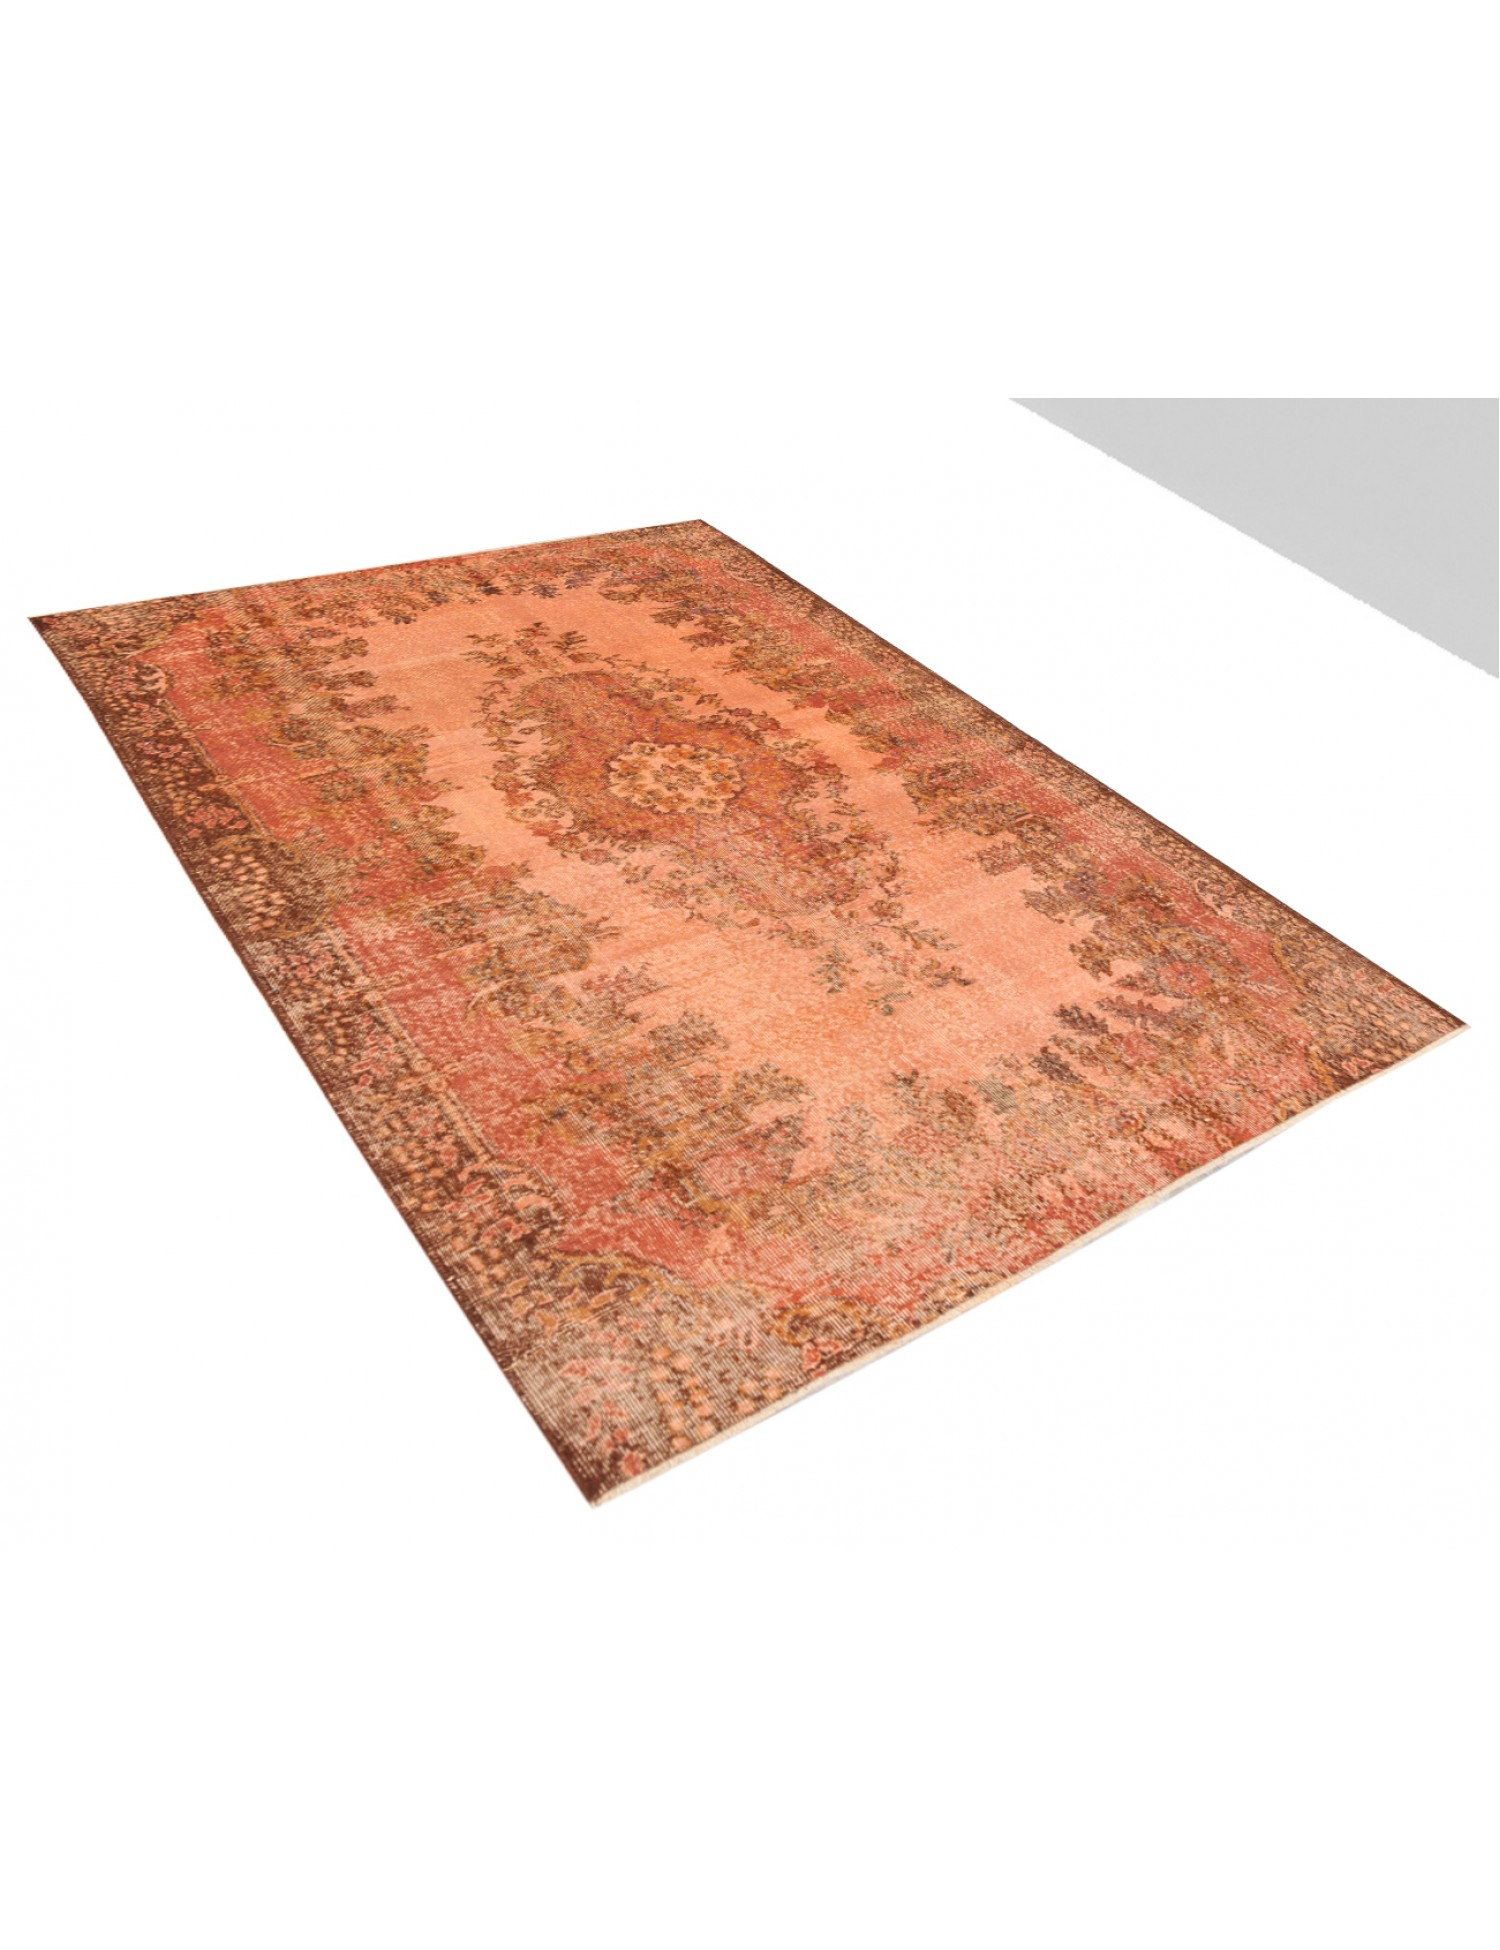 Vintage Carpet  orange <br/>283 x 188 cm